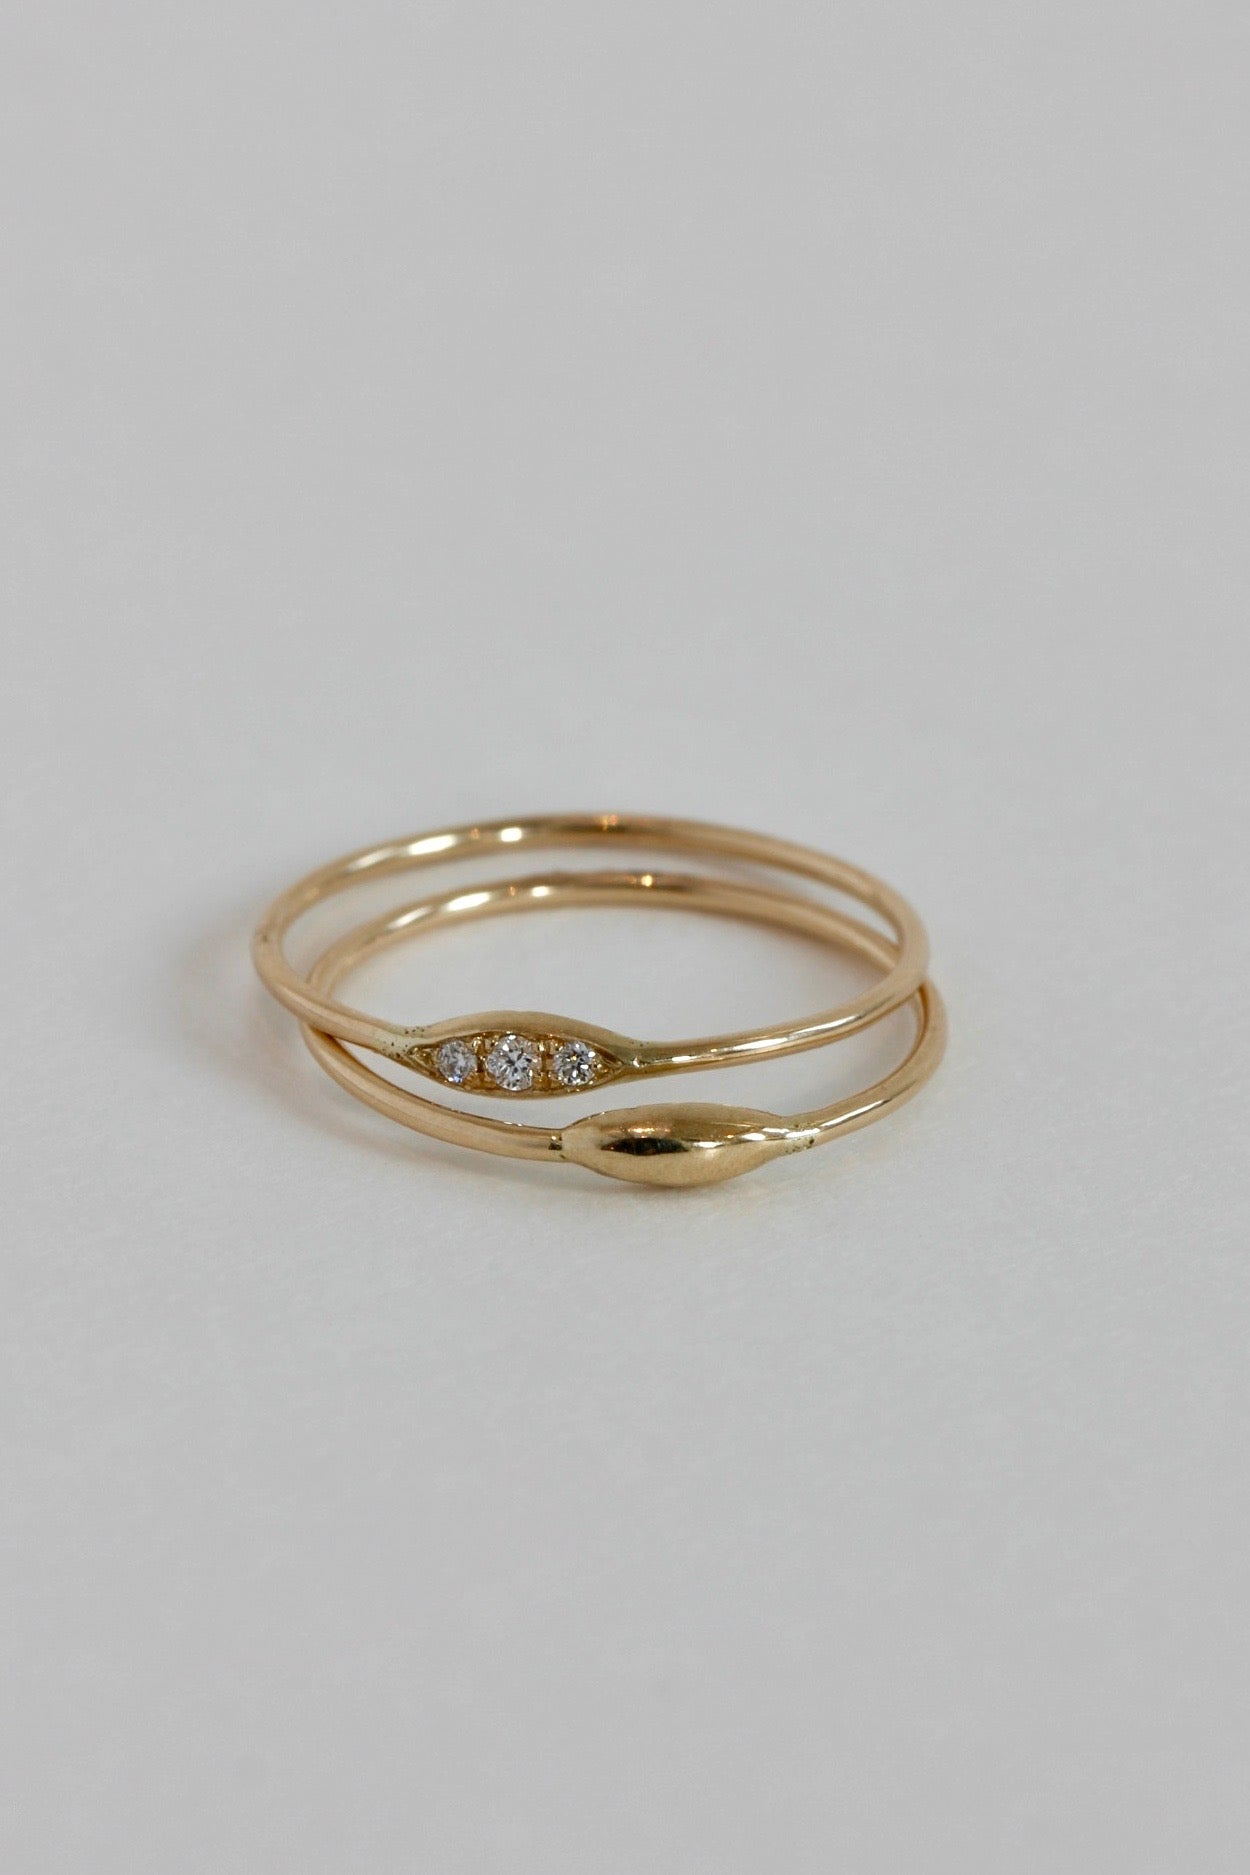 Hortense 14k gold rings